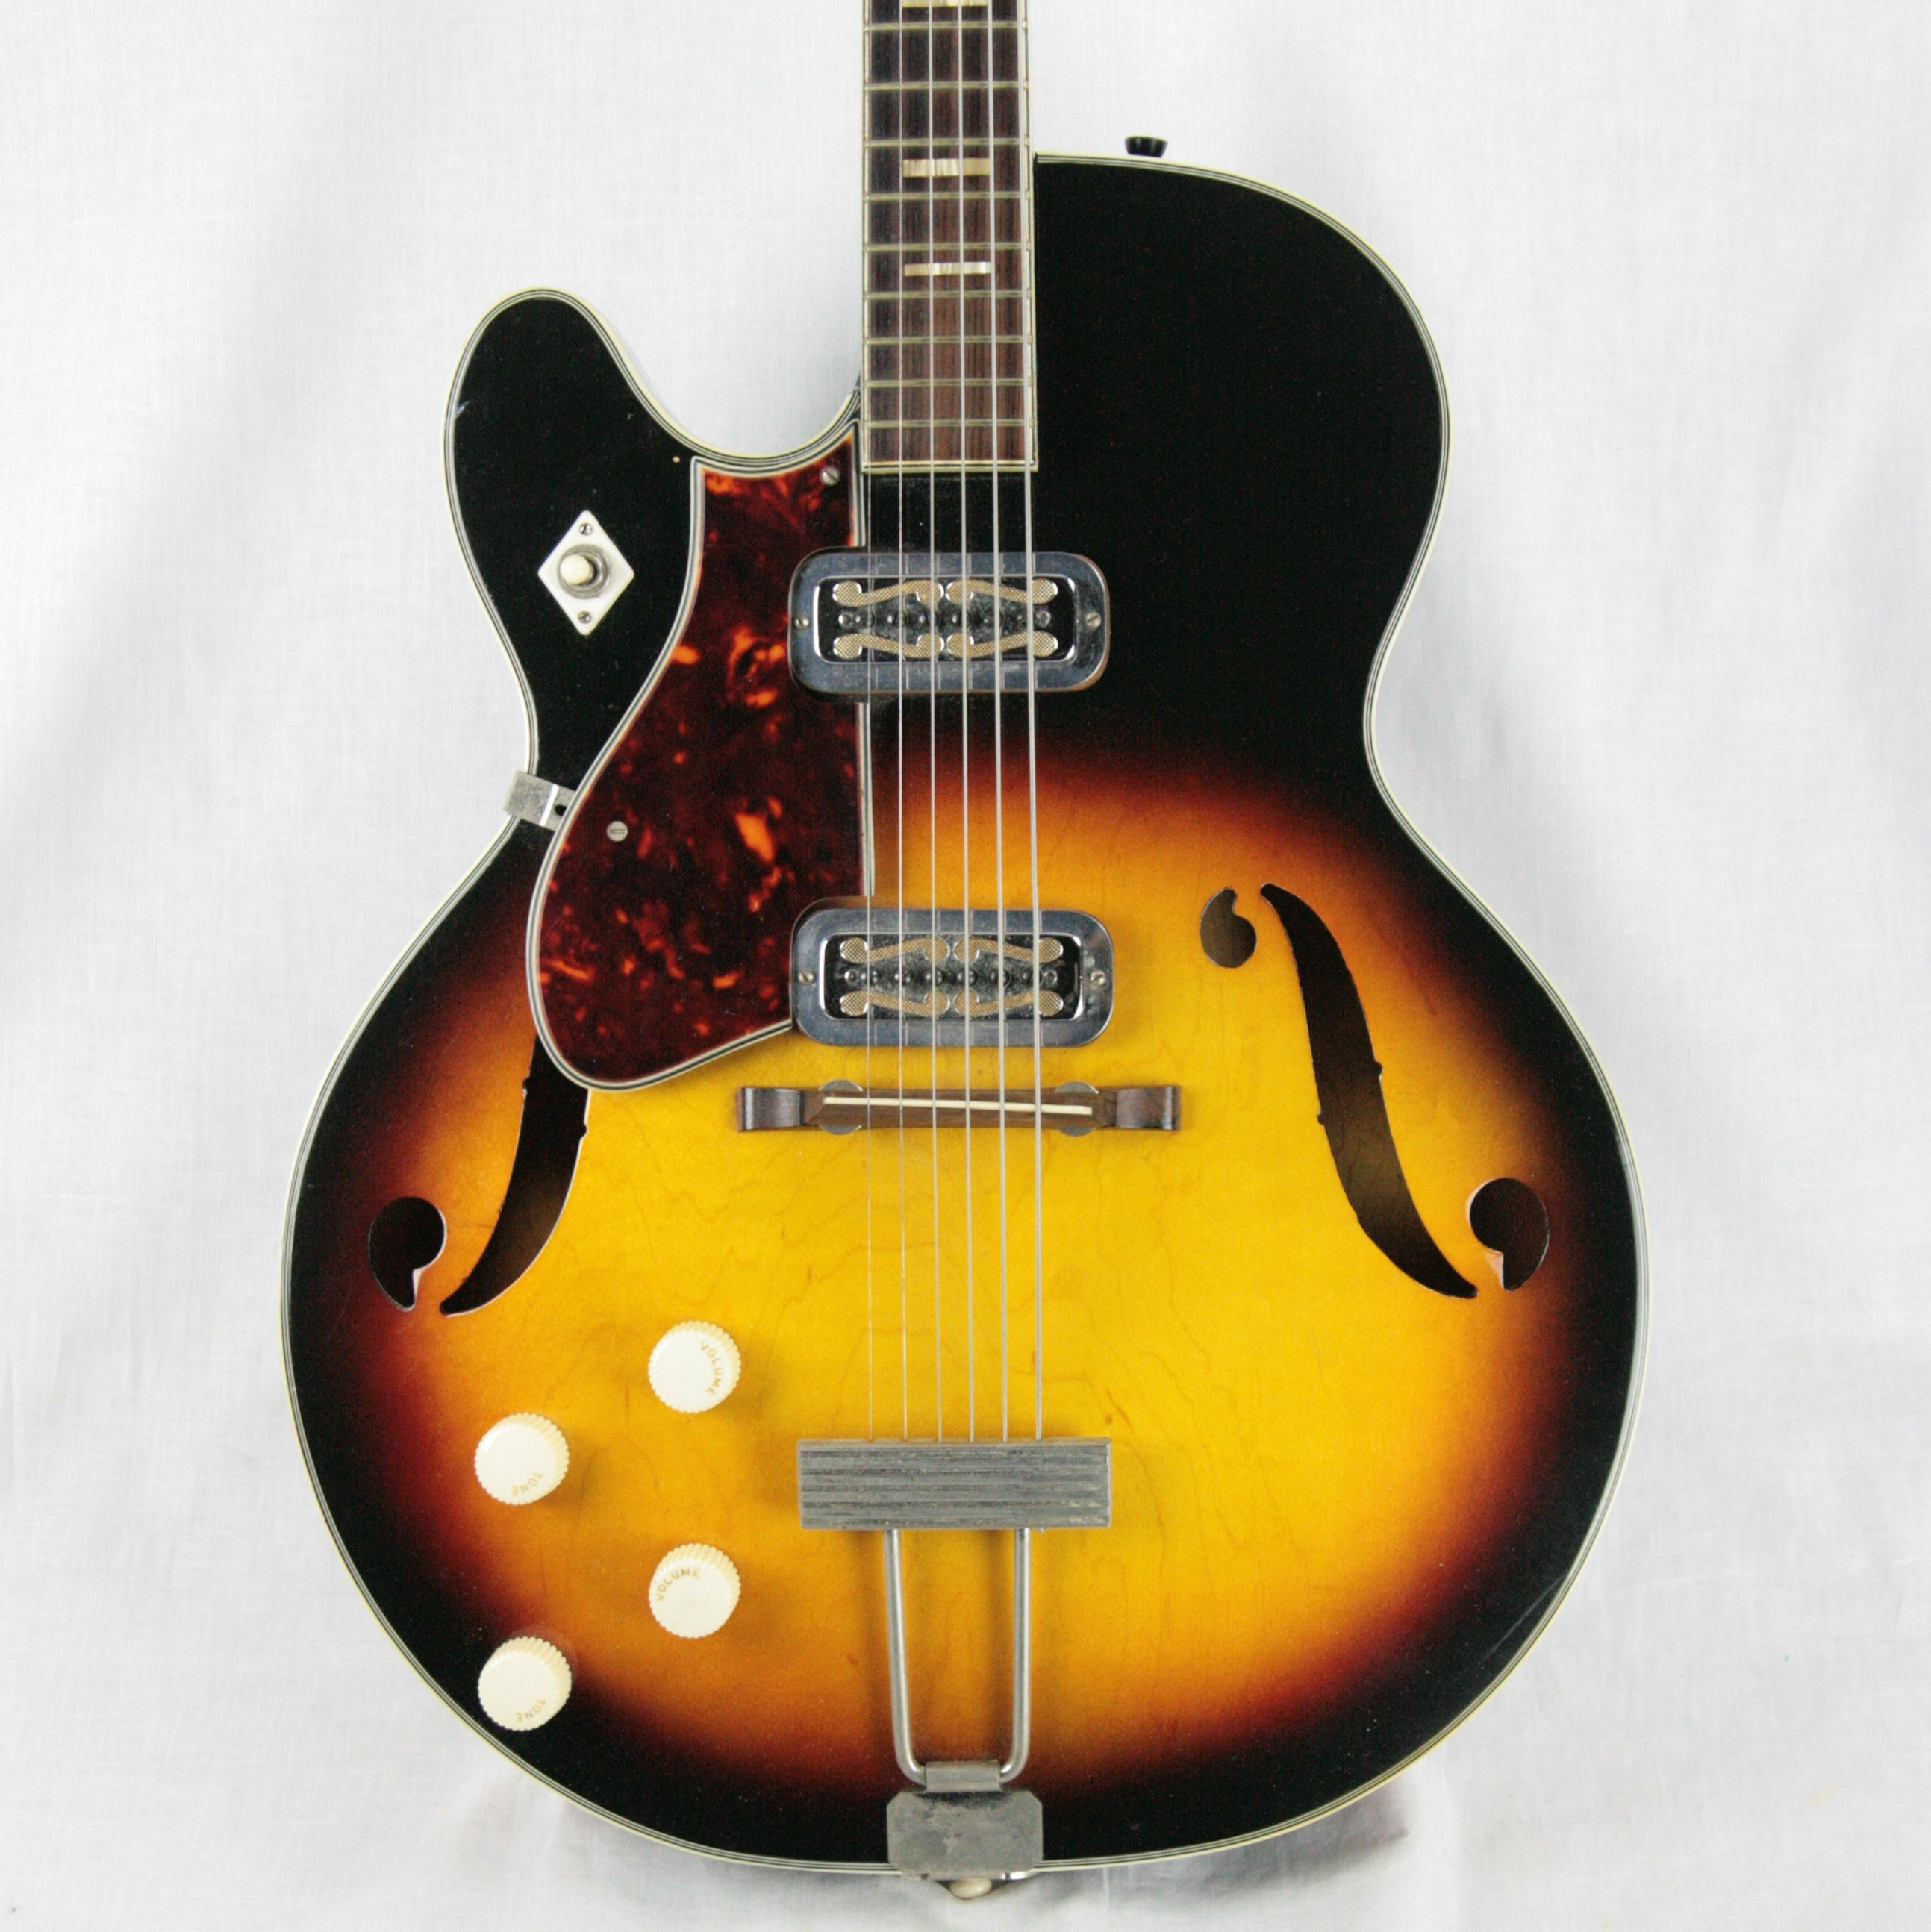 c 1960 Harmony H-70 Meteor LEFT-HANDED Guitar! Vintage Hollowbody! Keith Richards